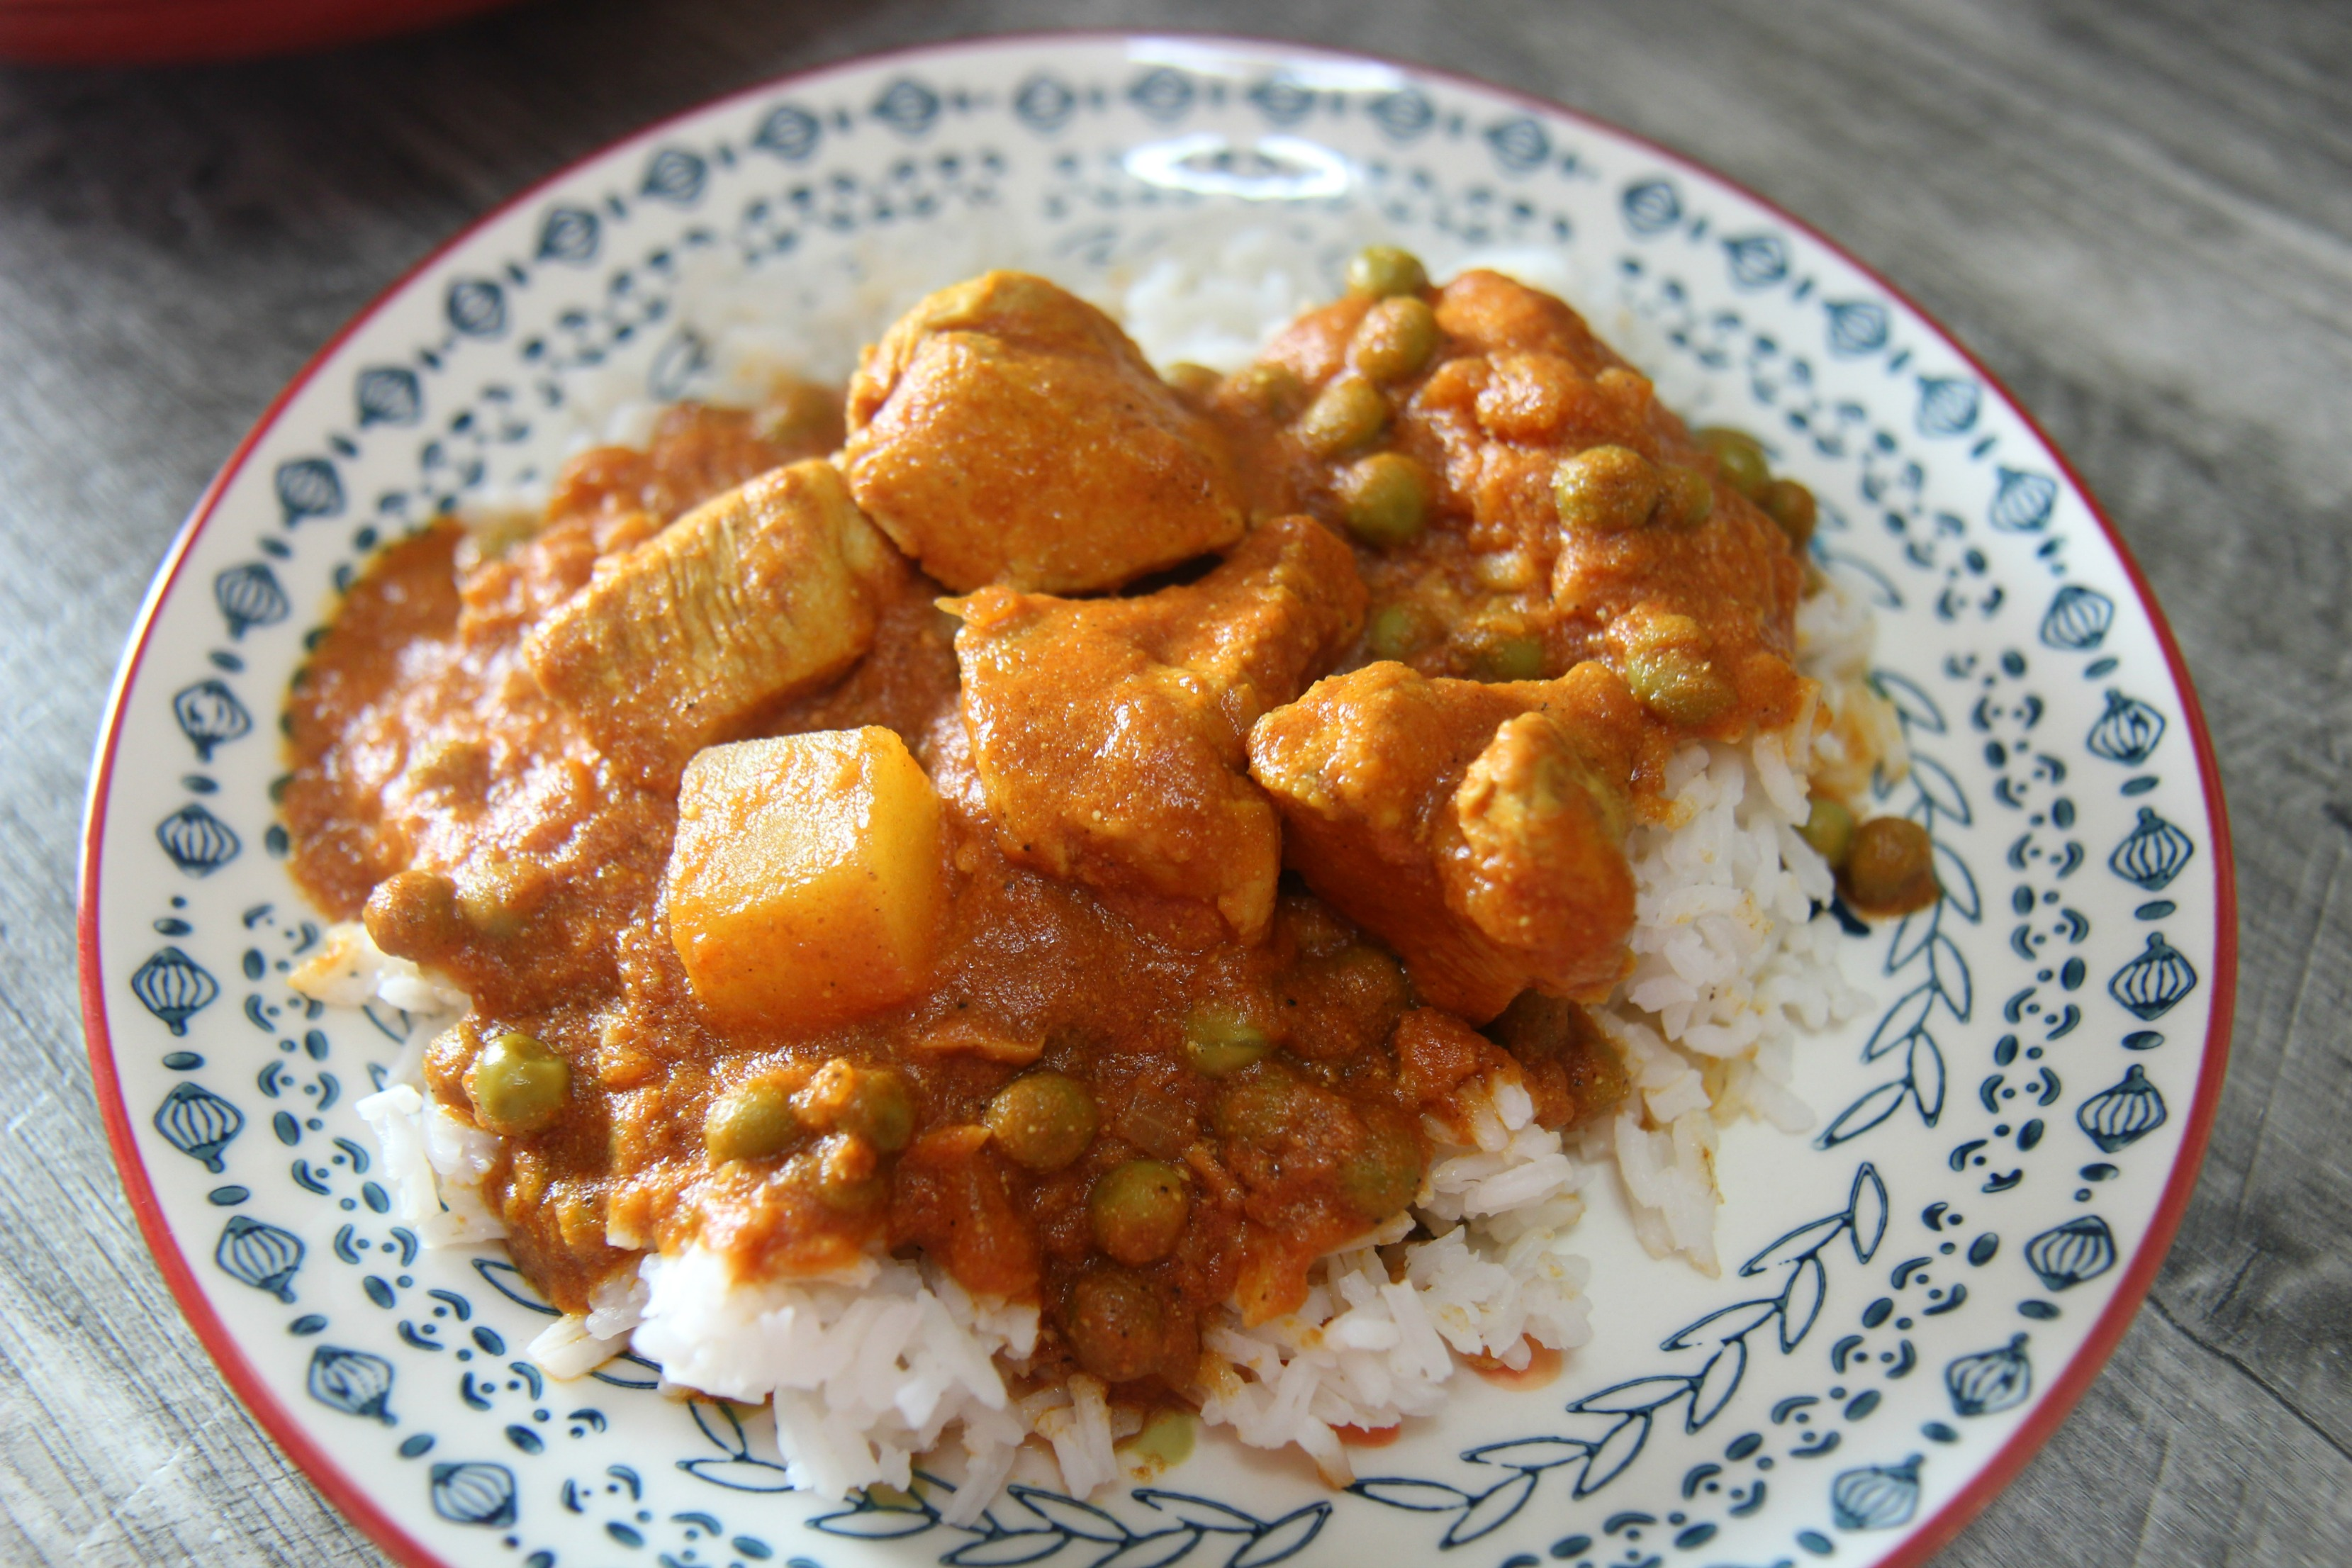 Served over rice, this coconut chicken curry is a delicious at-home Indian meal